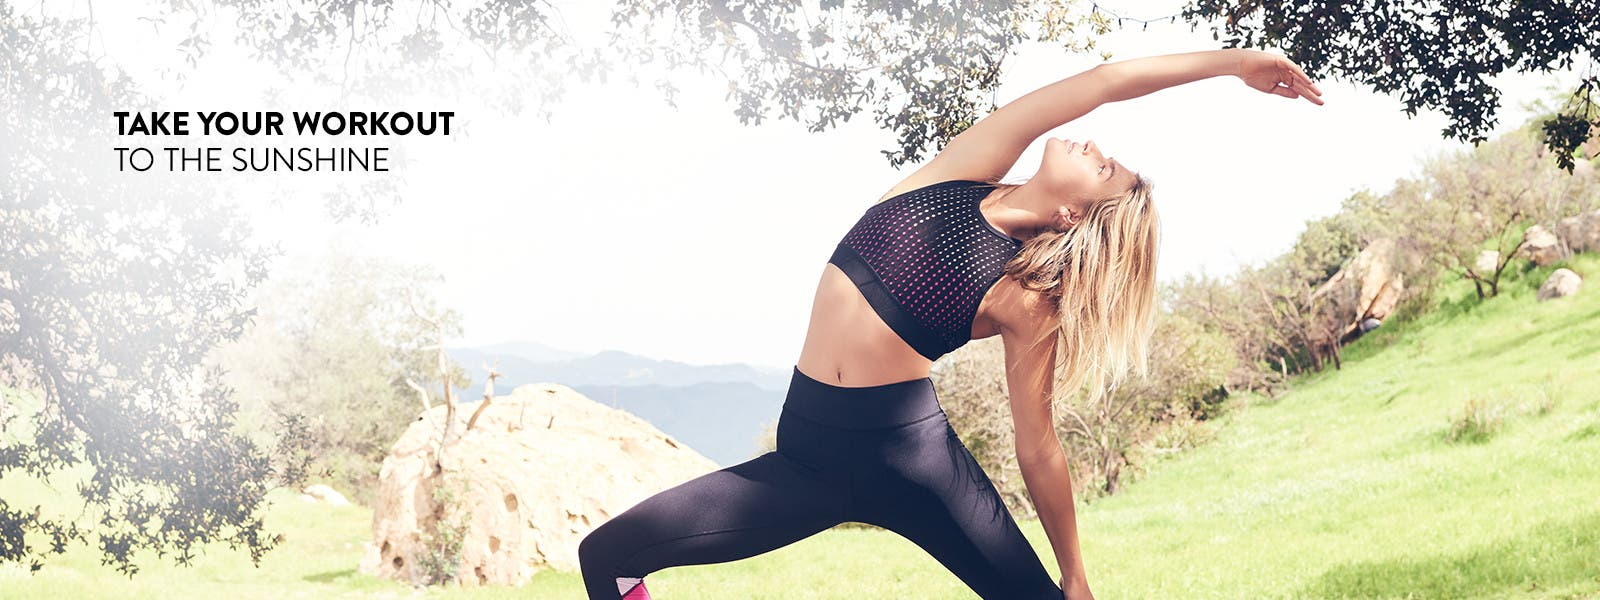 Take your workout to the sunshine.